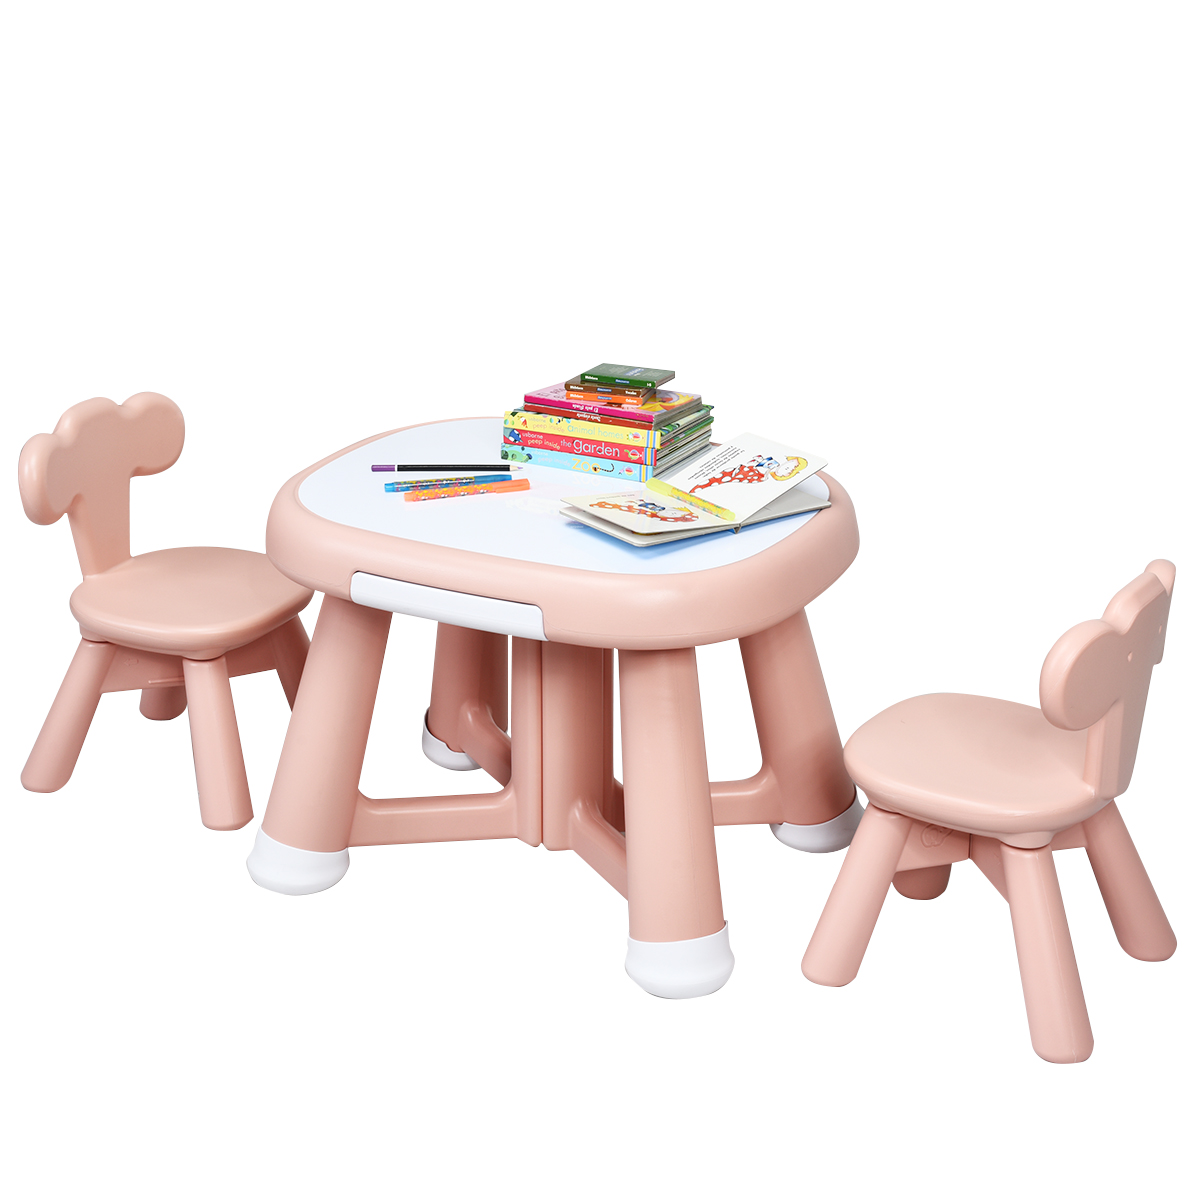 Kids Playing Studying Table Chair Set w/2 Chair Storage Bins Classroom Pink